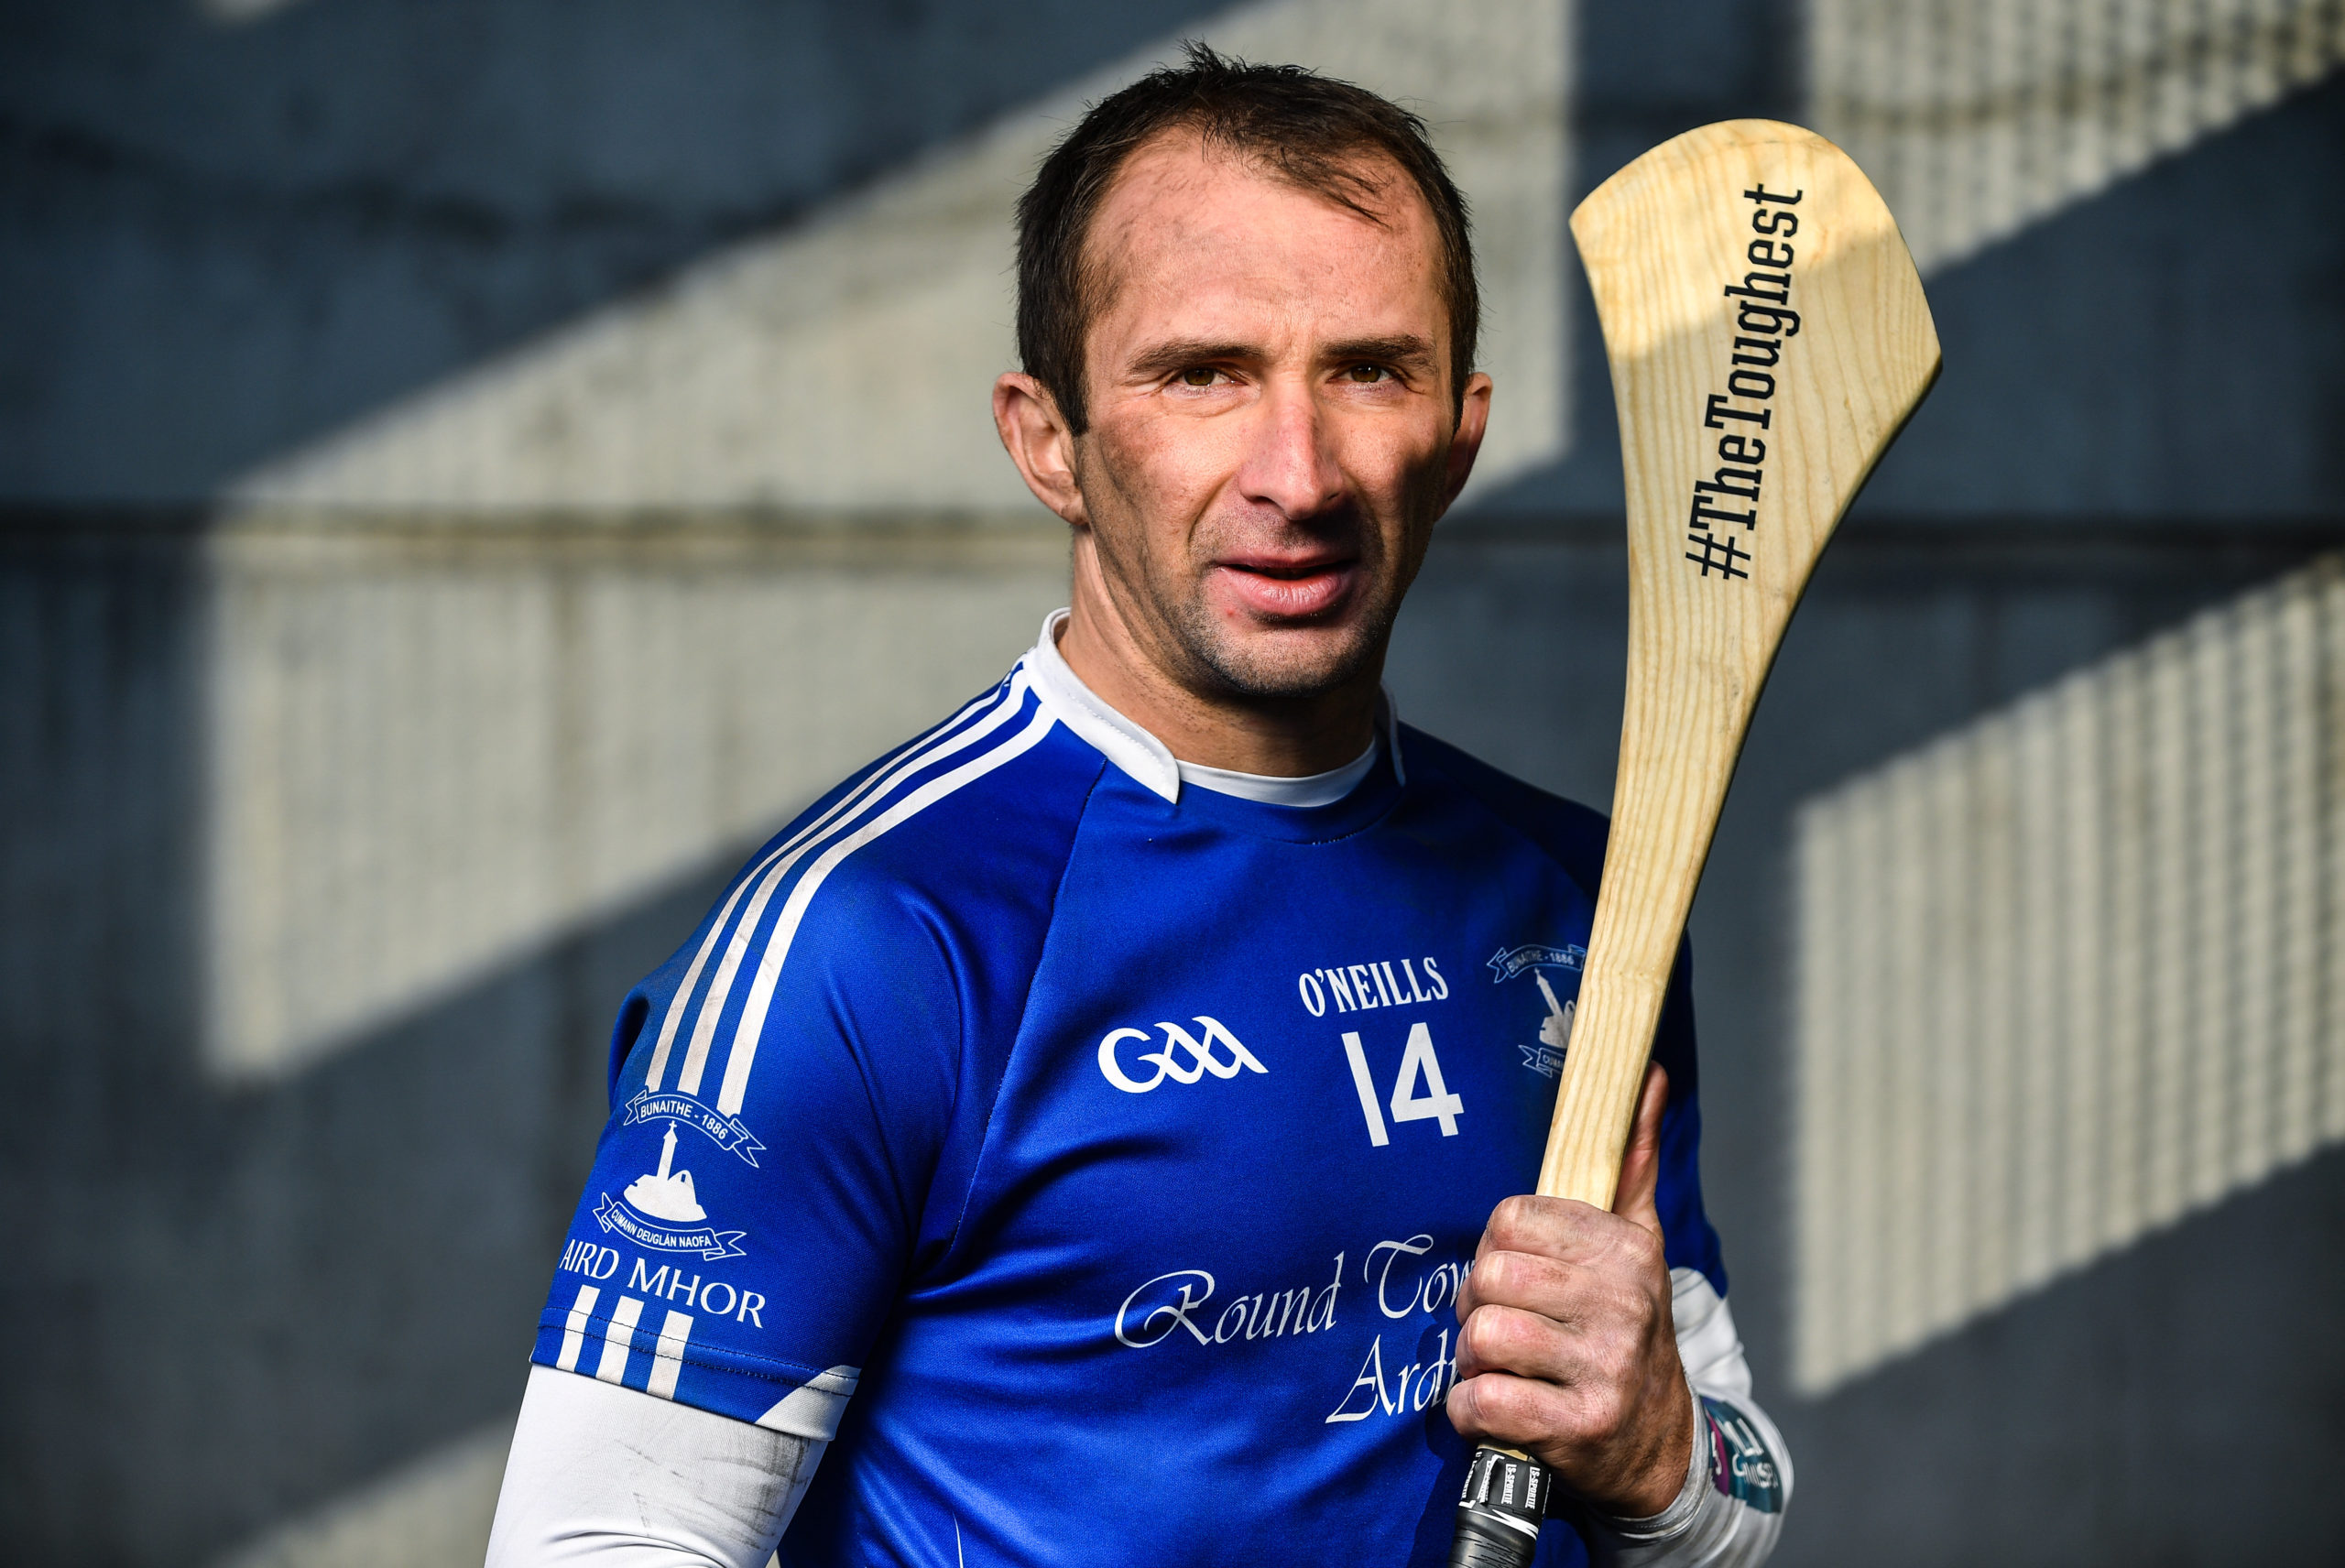 Seamus Prendergast says it would be a wonderful acheivement for Ardmore to bring home a Munster Championship.